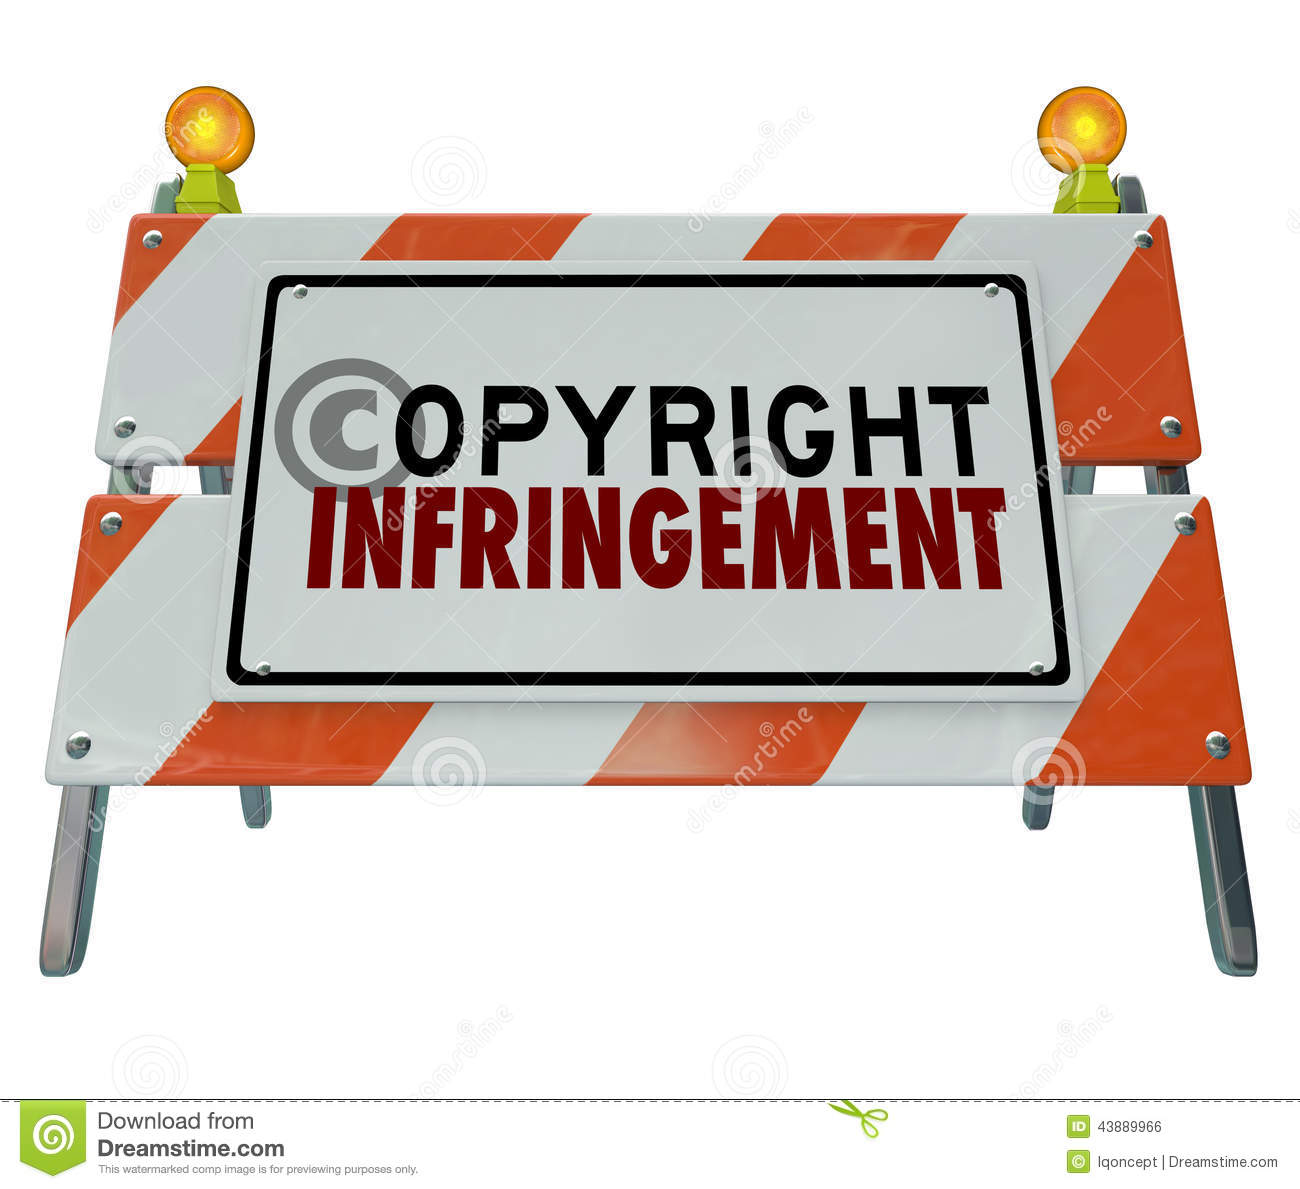 Intellectual Property Infringement: Clipart Panda - Free Clipart Images